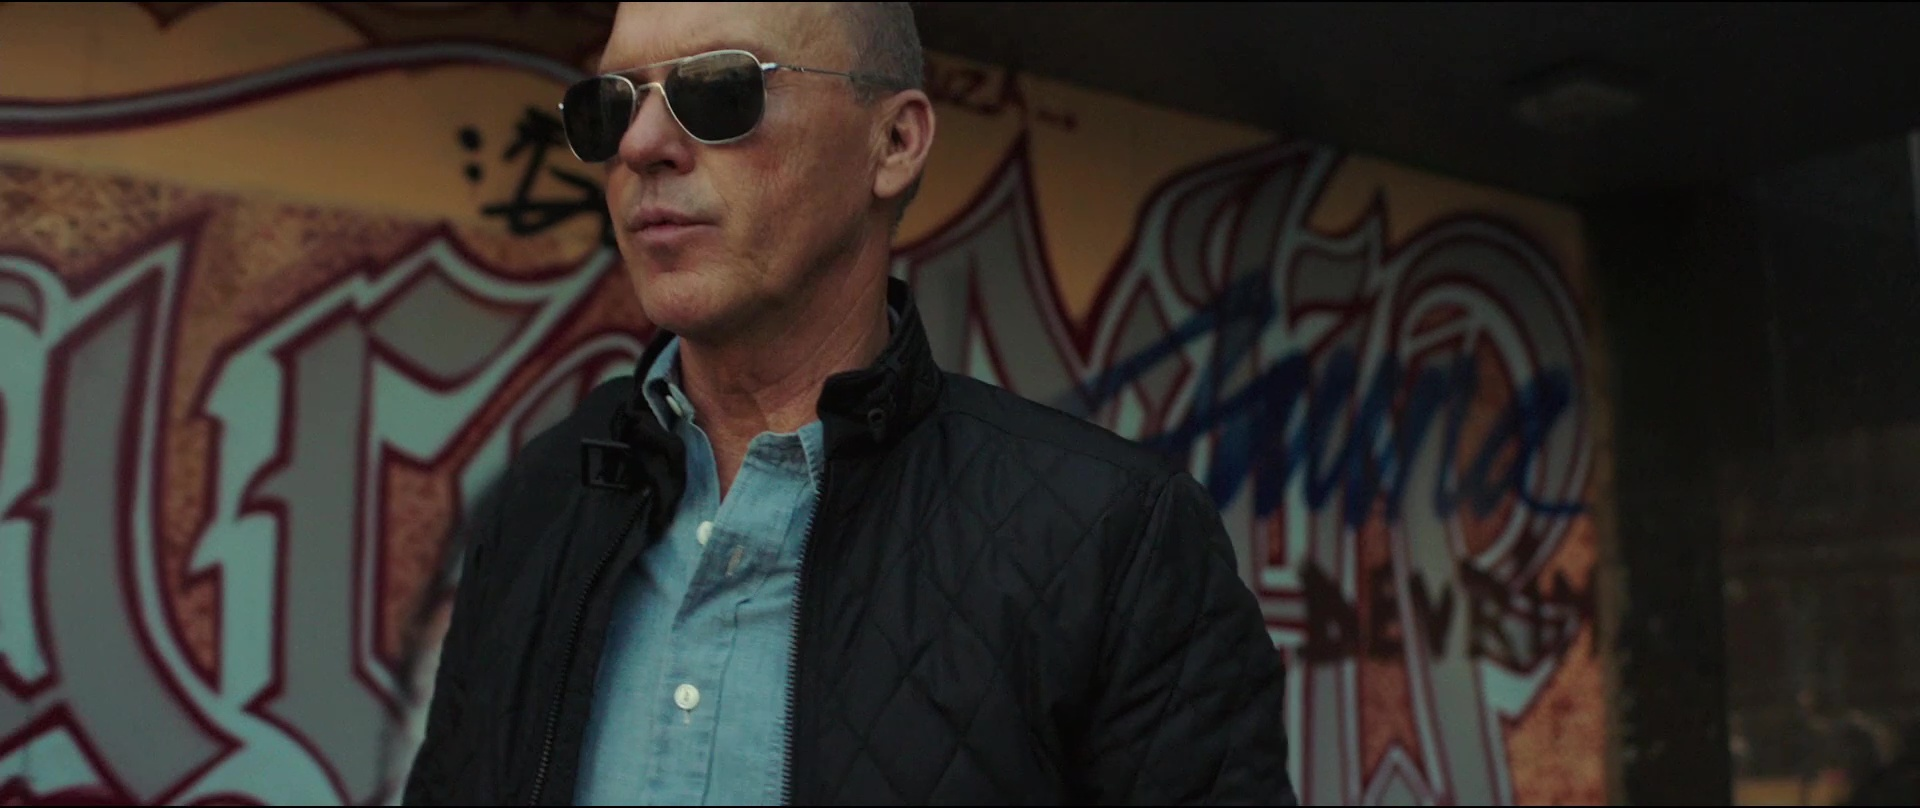 5a2ad9b71a Randolph Engineering Aviator Sunglasses Worn by Michael Keaton in American  Assassin (2017) Movie Product